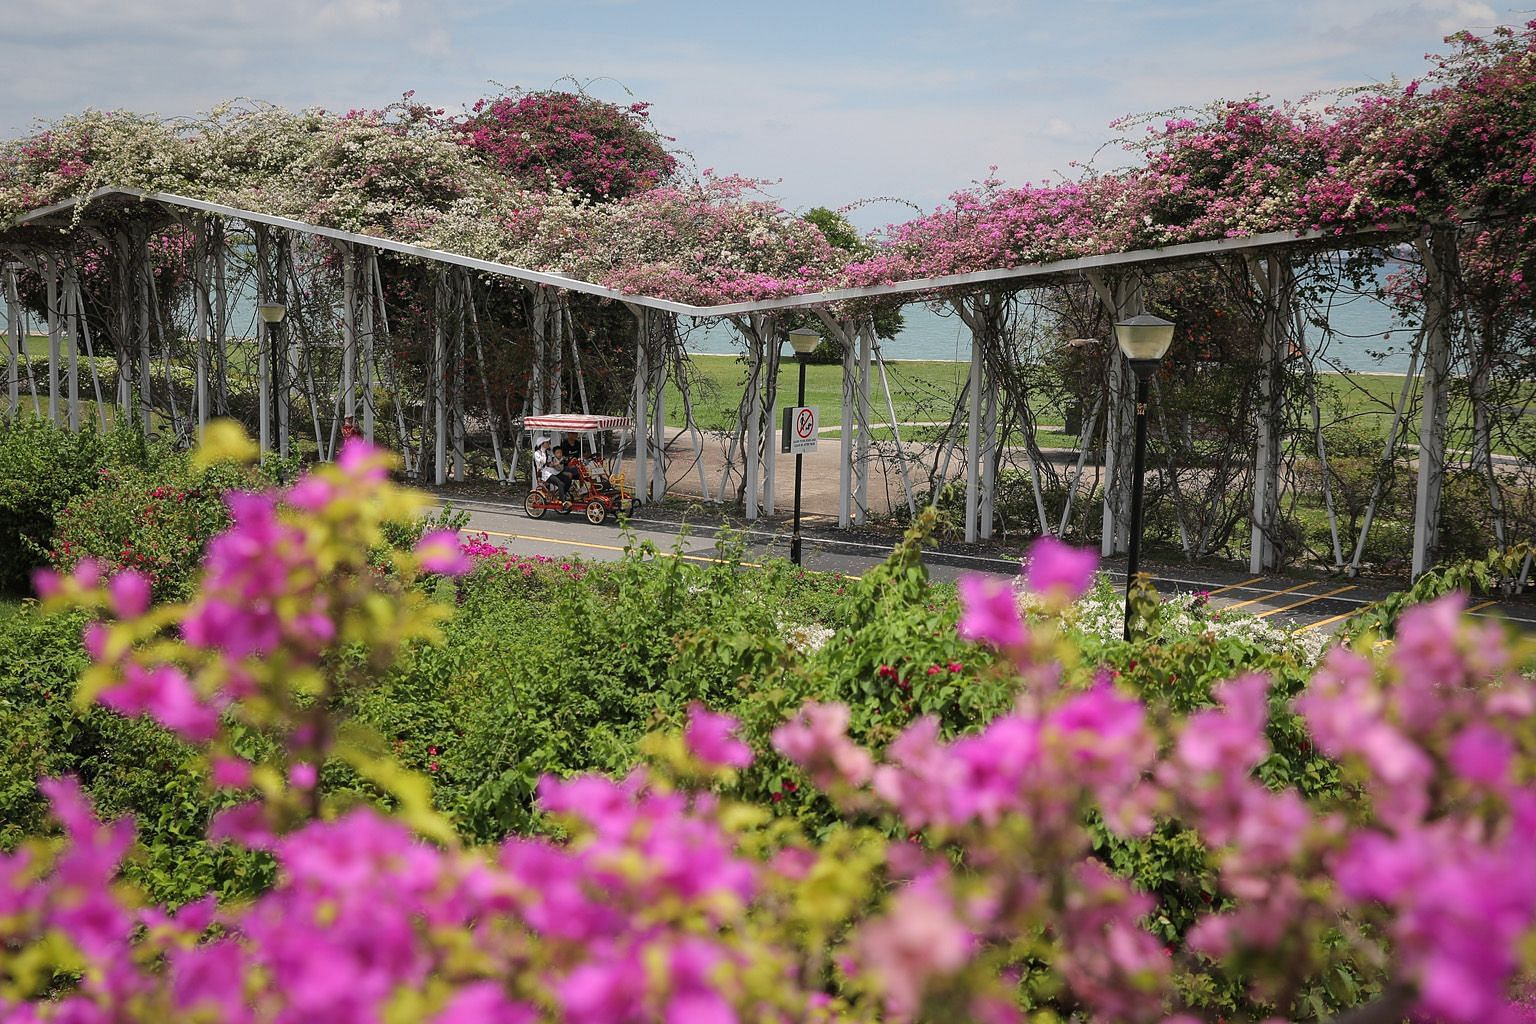 Bougainvillea Garden at East Coast Park was awash with colour yesterday as the signature plants blossomed profusely in the recent wet weather. Bougainvillea, commonly found around the island, especially on overhead bridges and highways, is grown exte